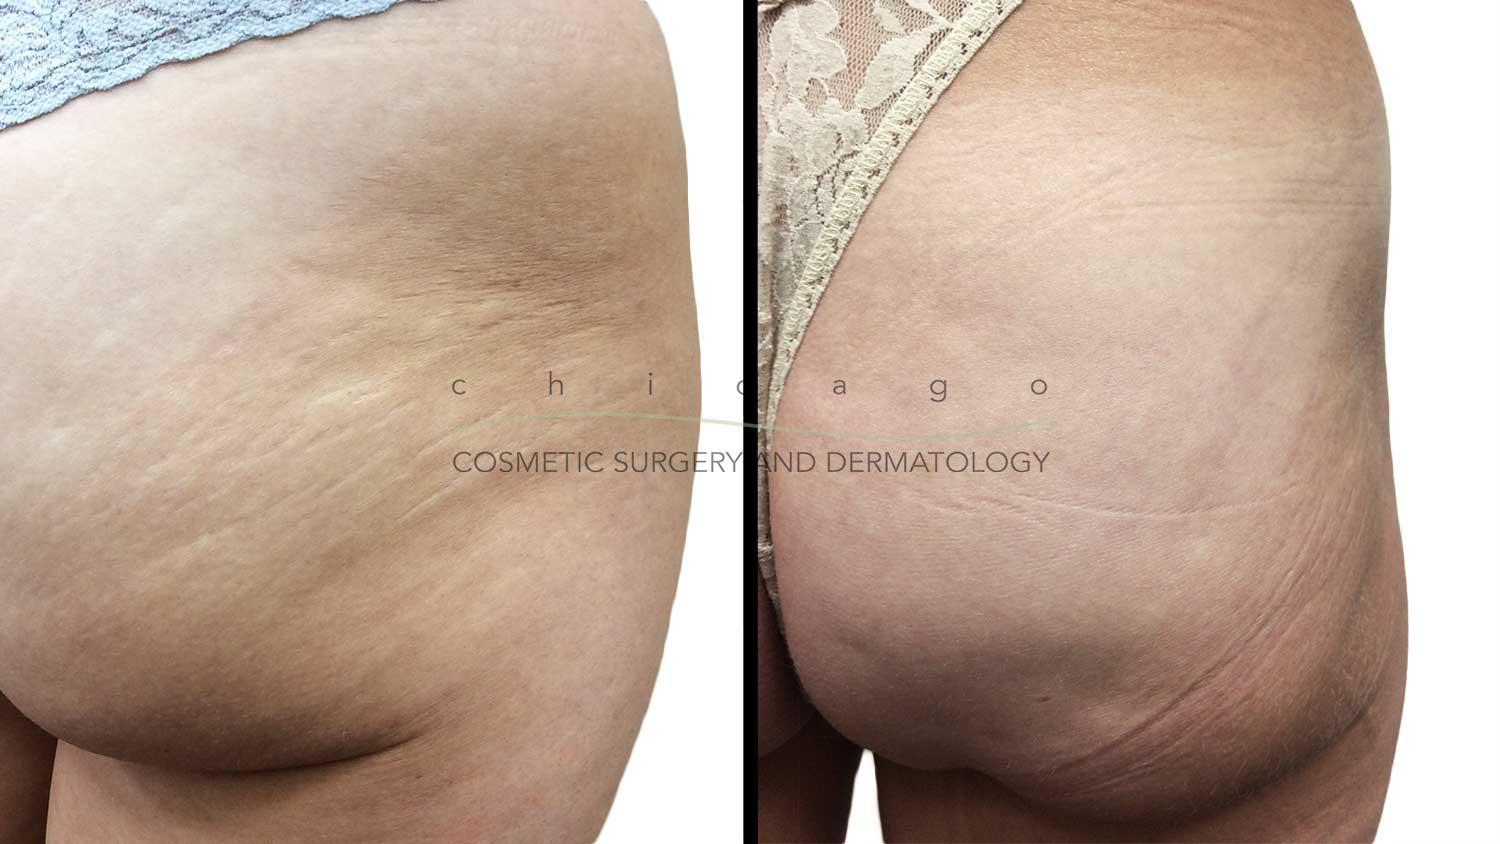 Microneedling with PRP for Stretch Marks by Brittany Rank, PA-C